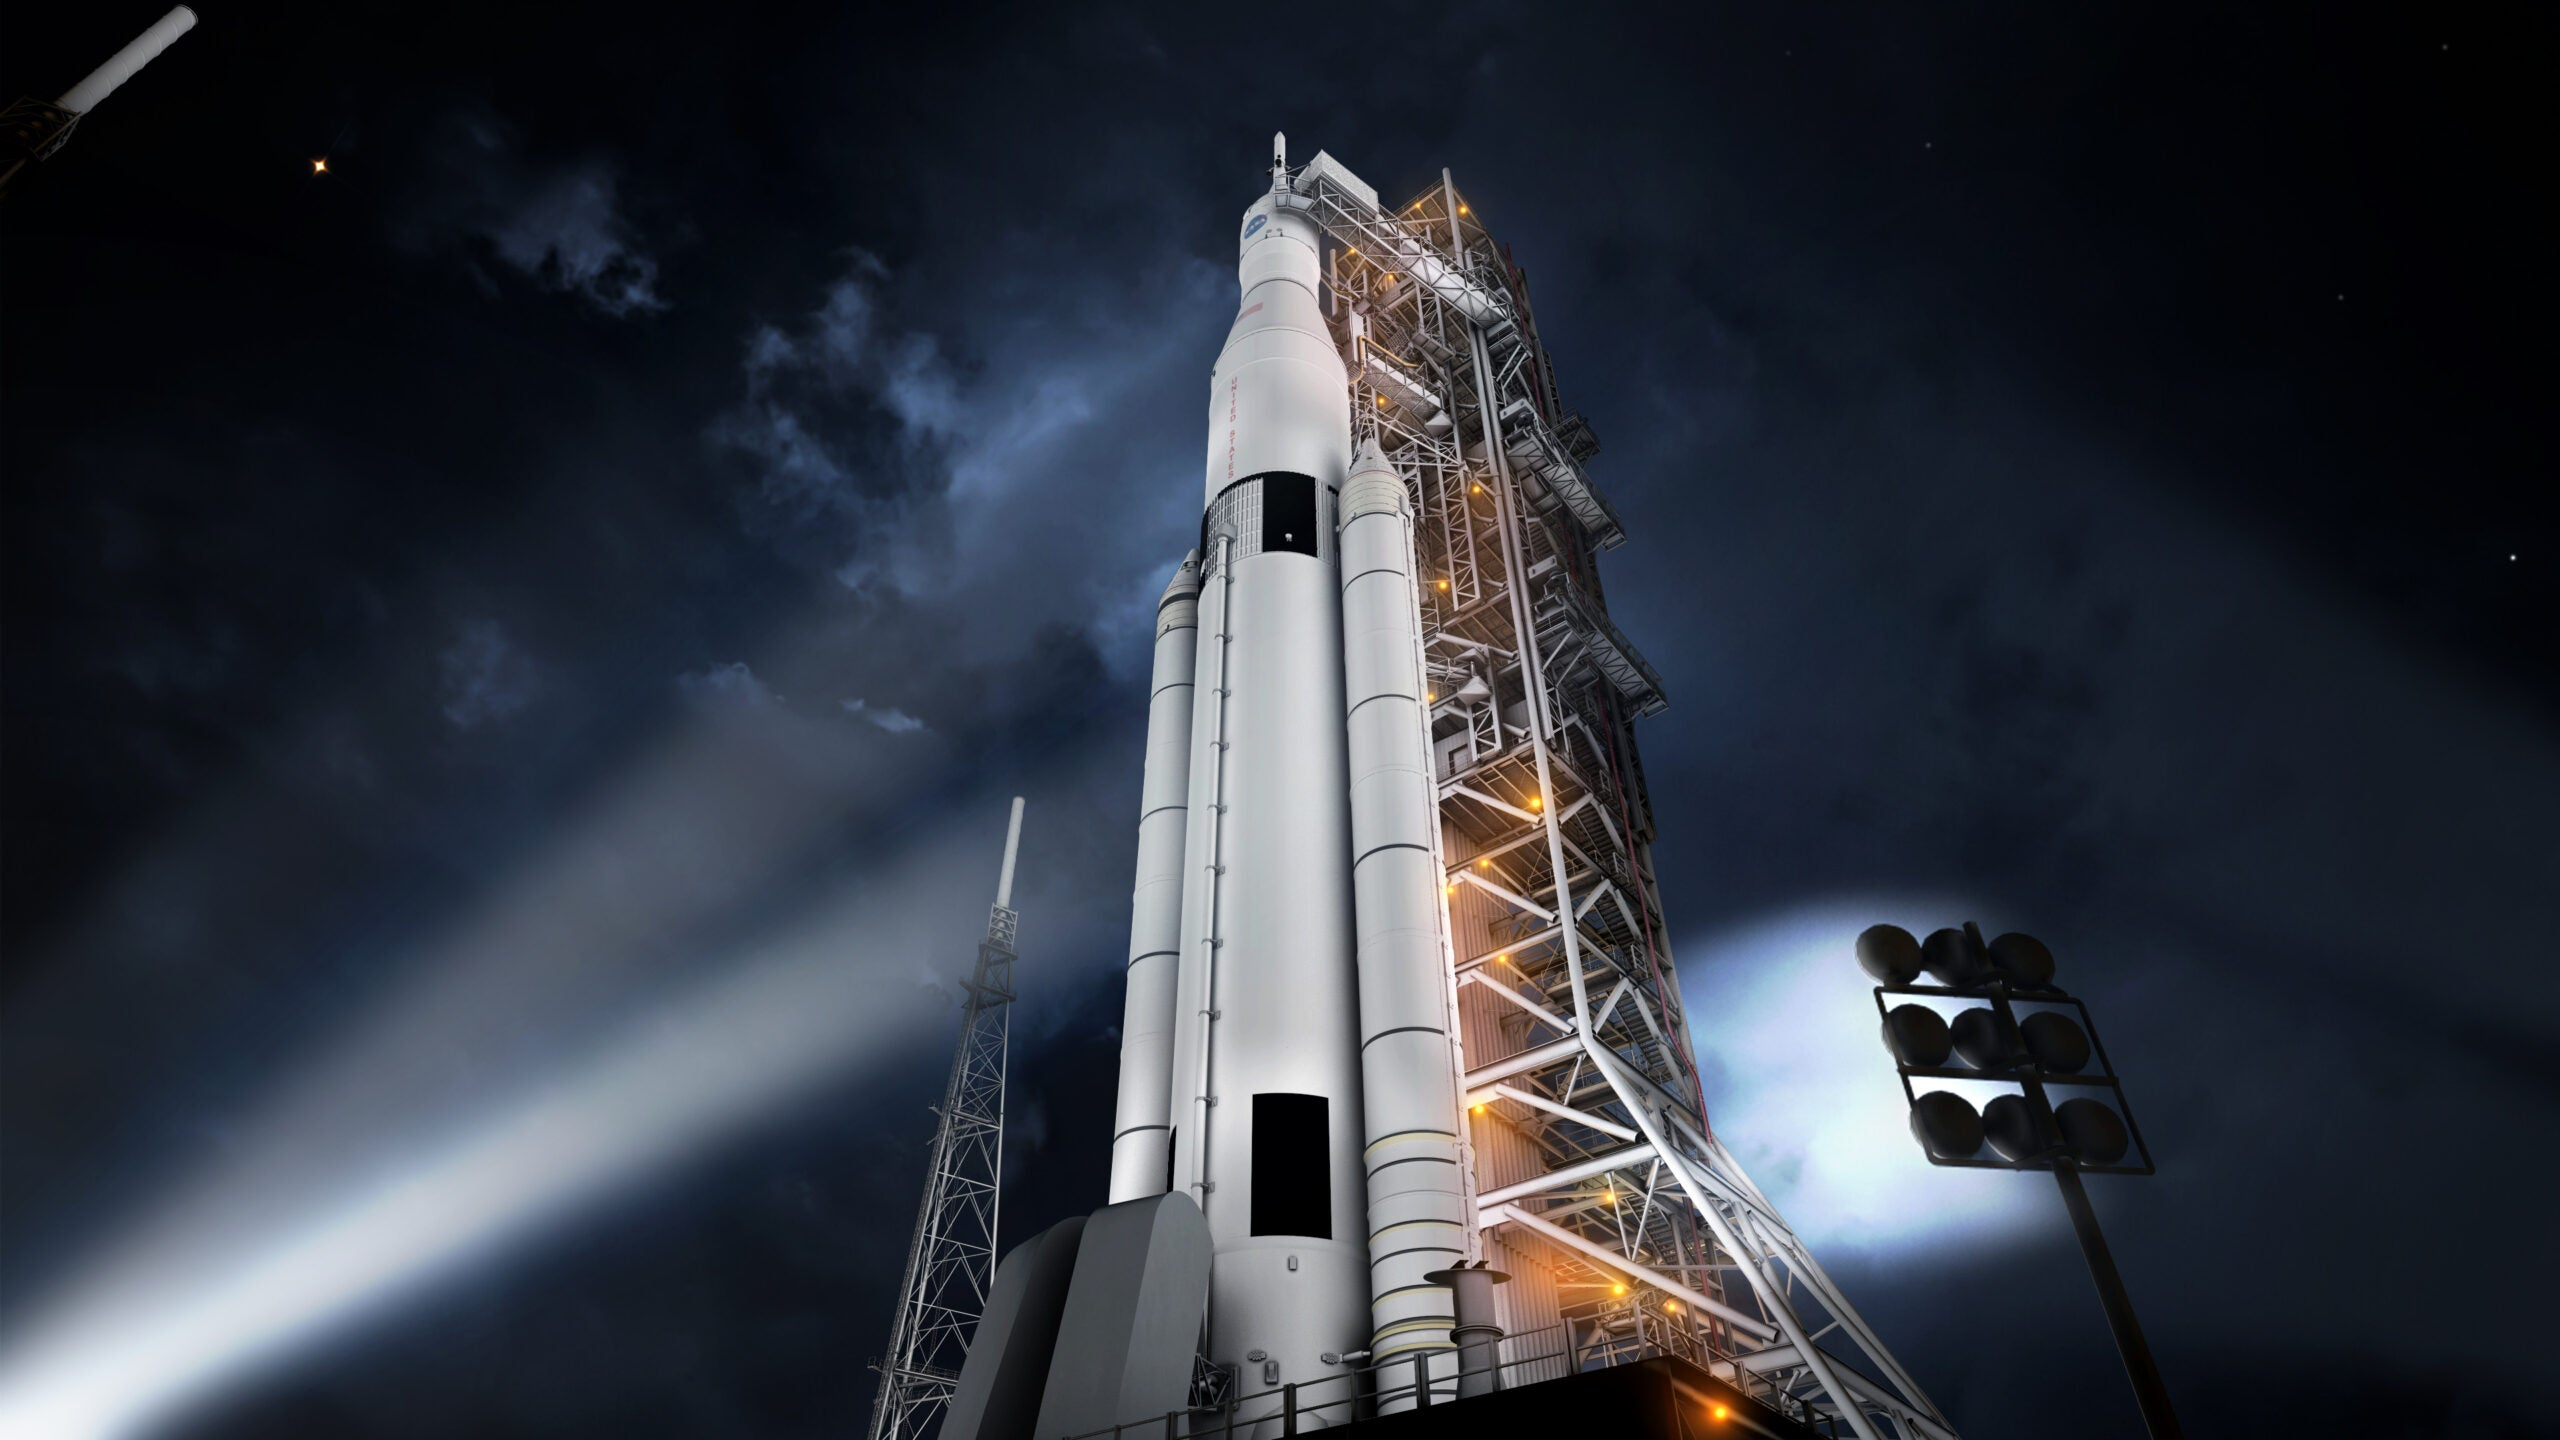 NASA's Heavy Lift Rocket Is Plagued With Problems